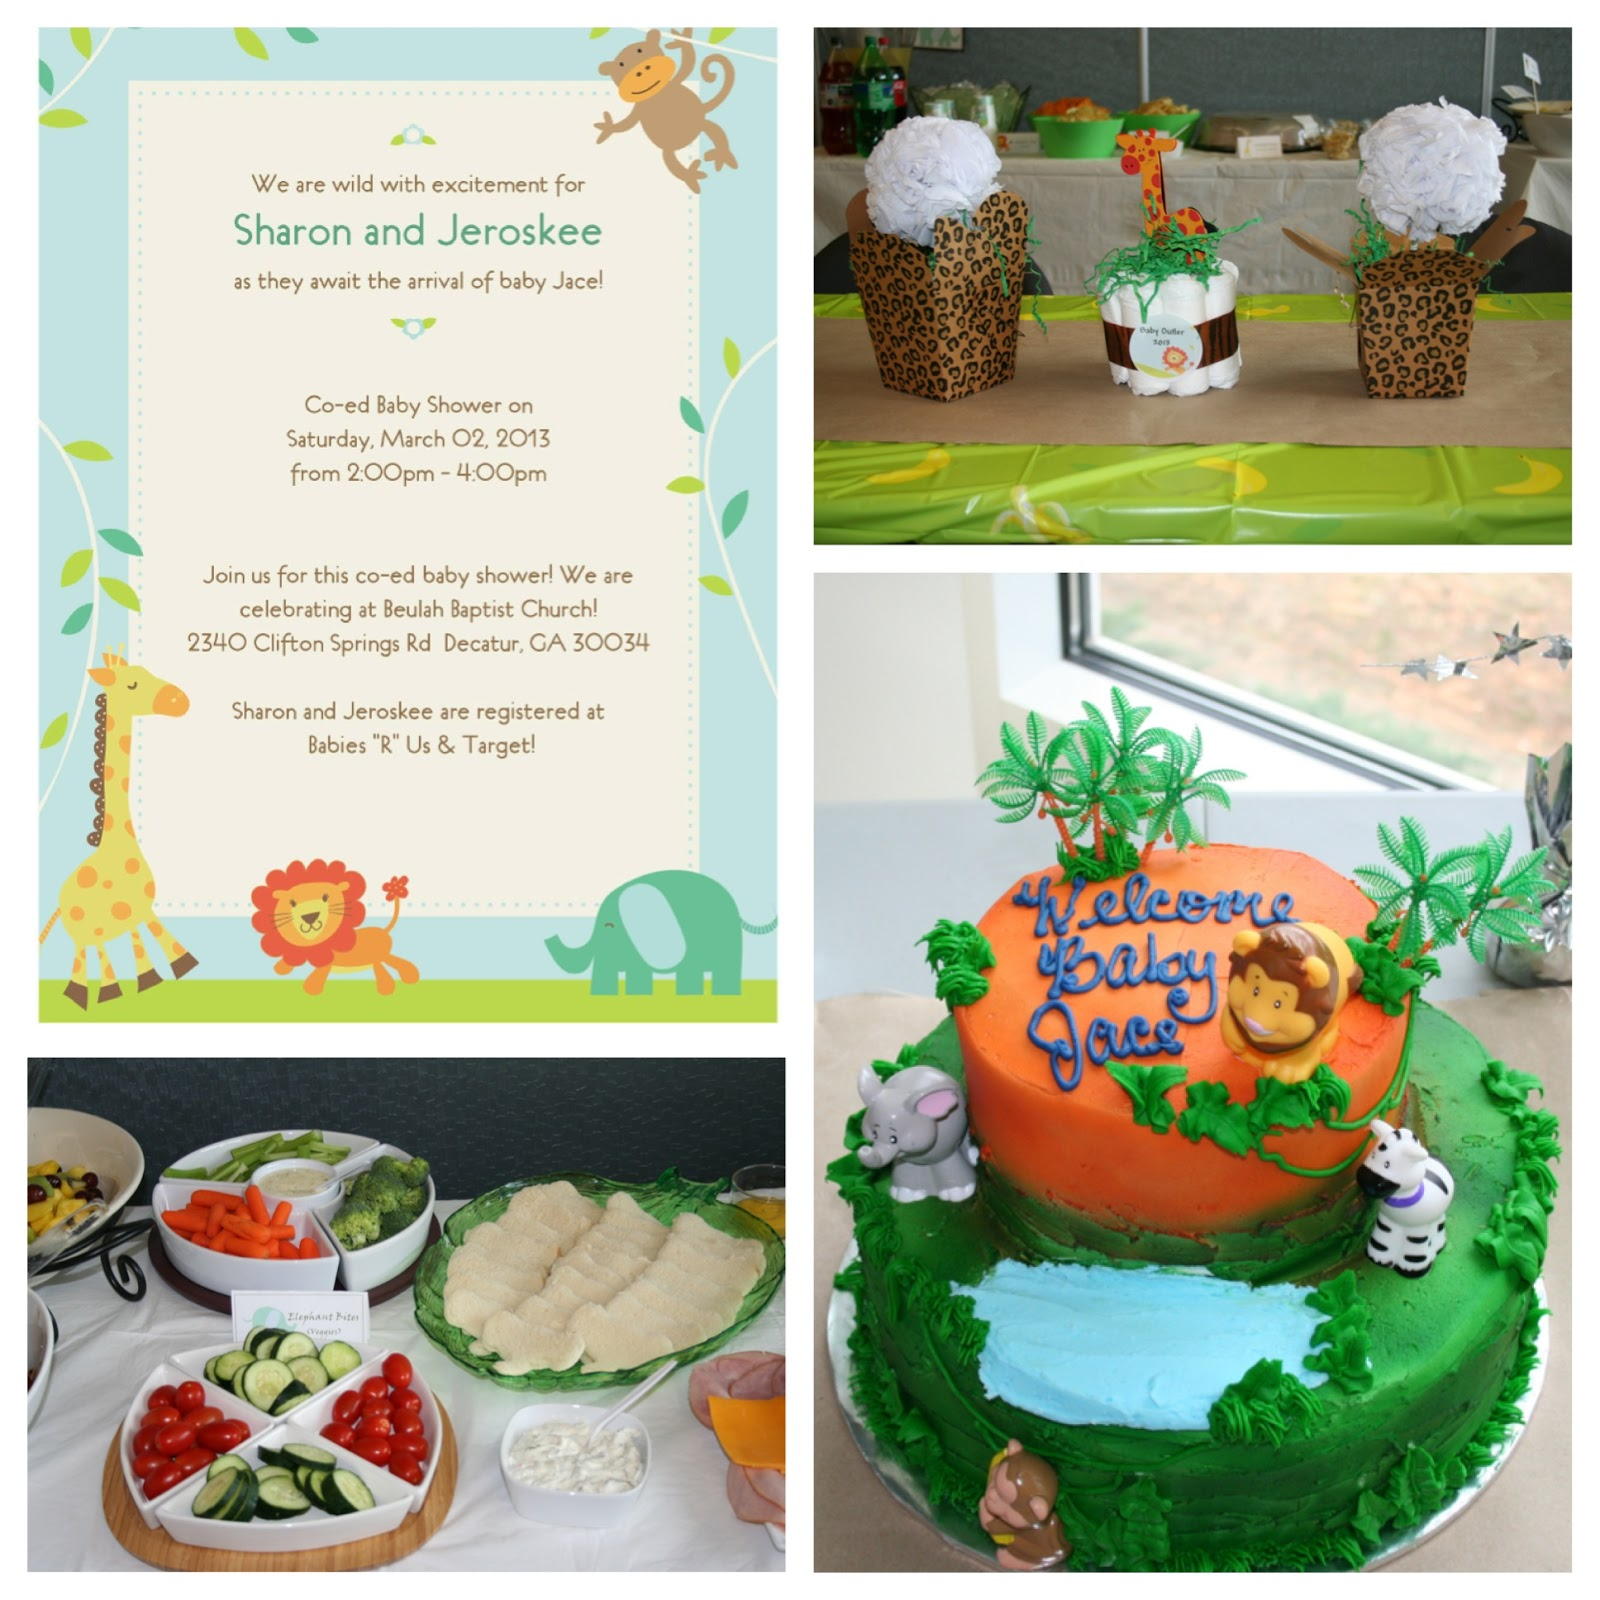 Cordier Events_jungle baby shower invite_decor_food_cake